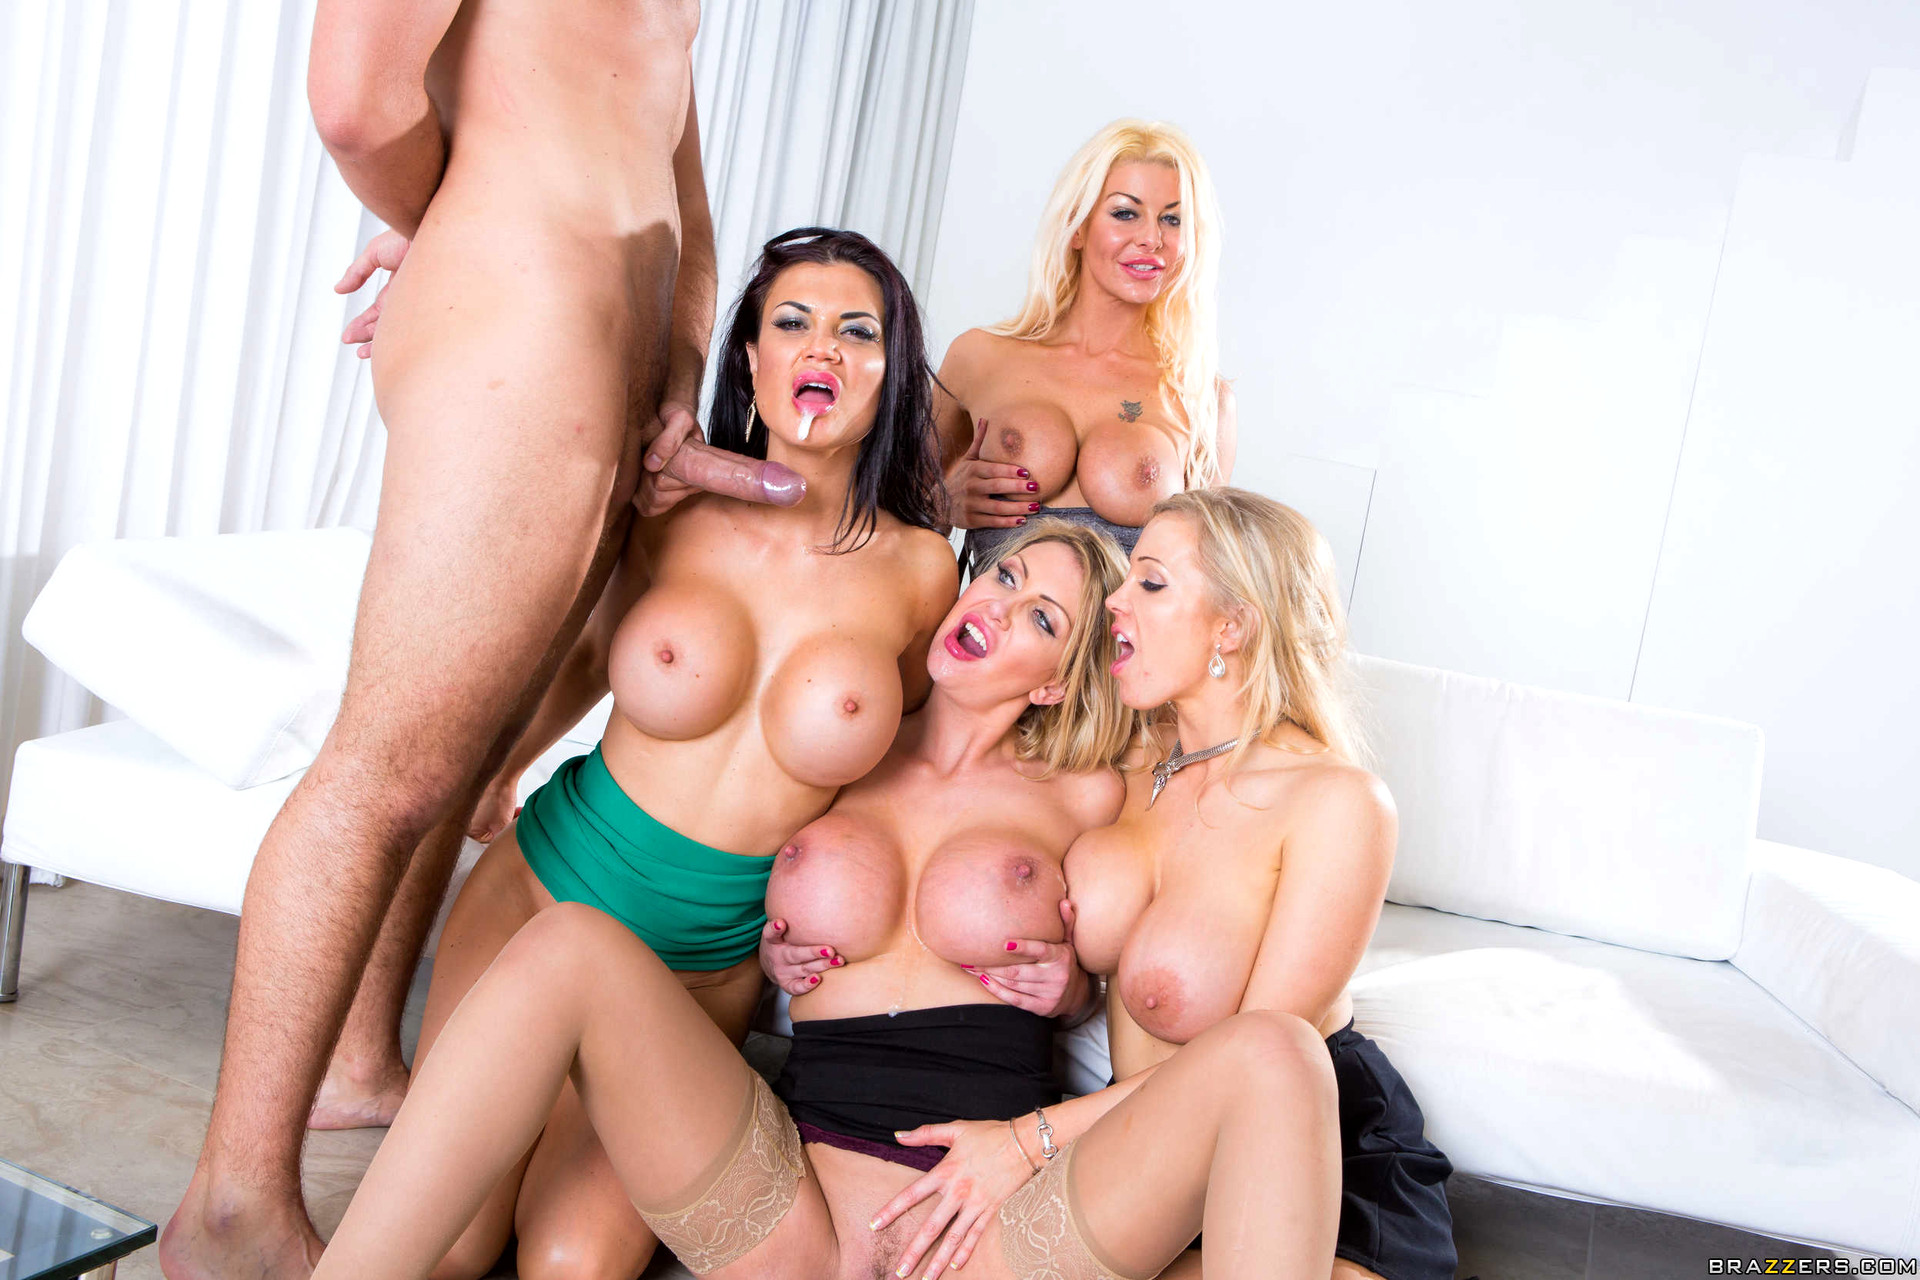 Brazzers sexy housewife with big boobs full photo in comments